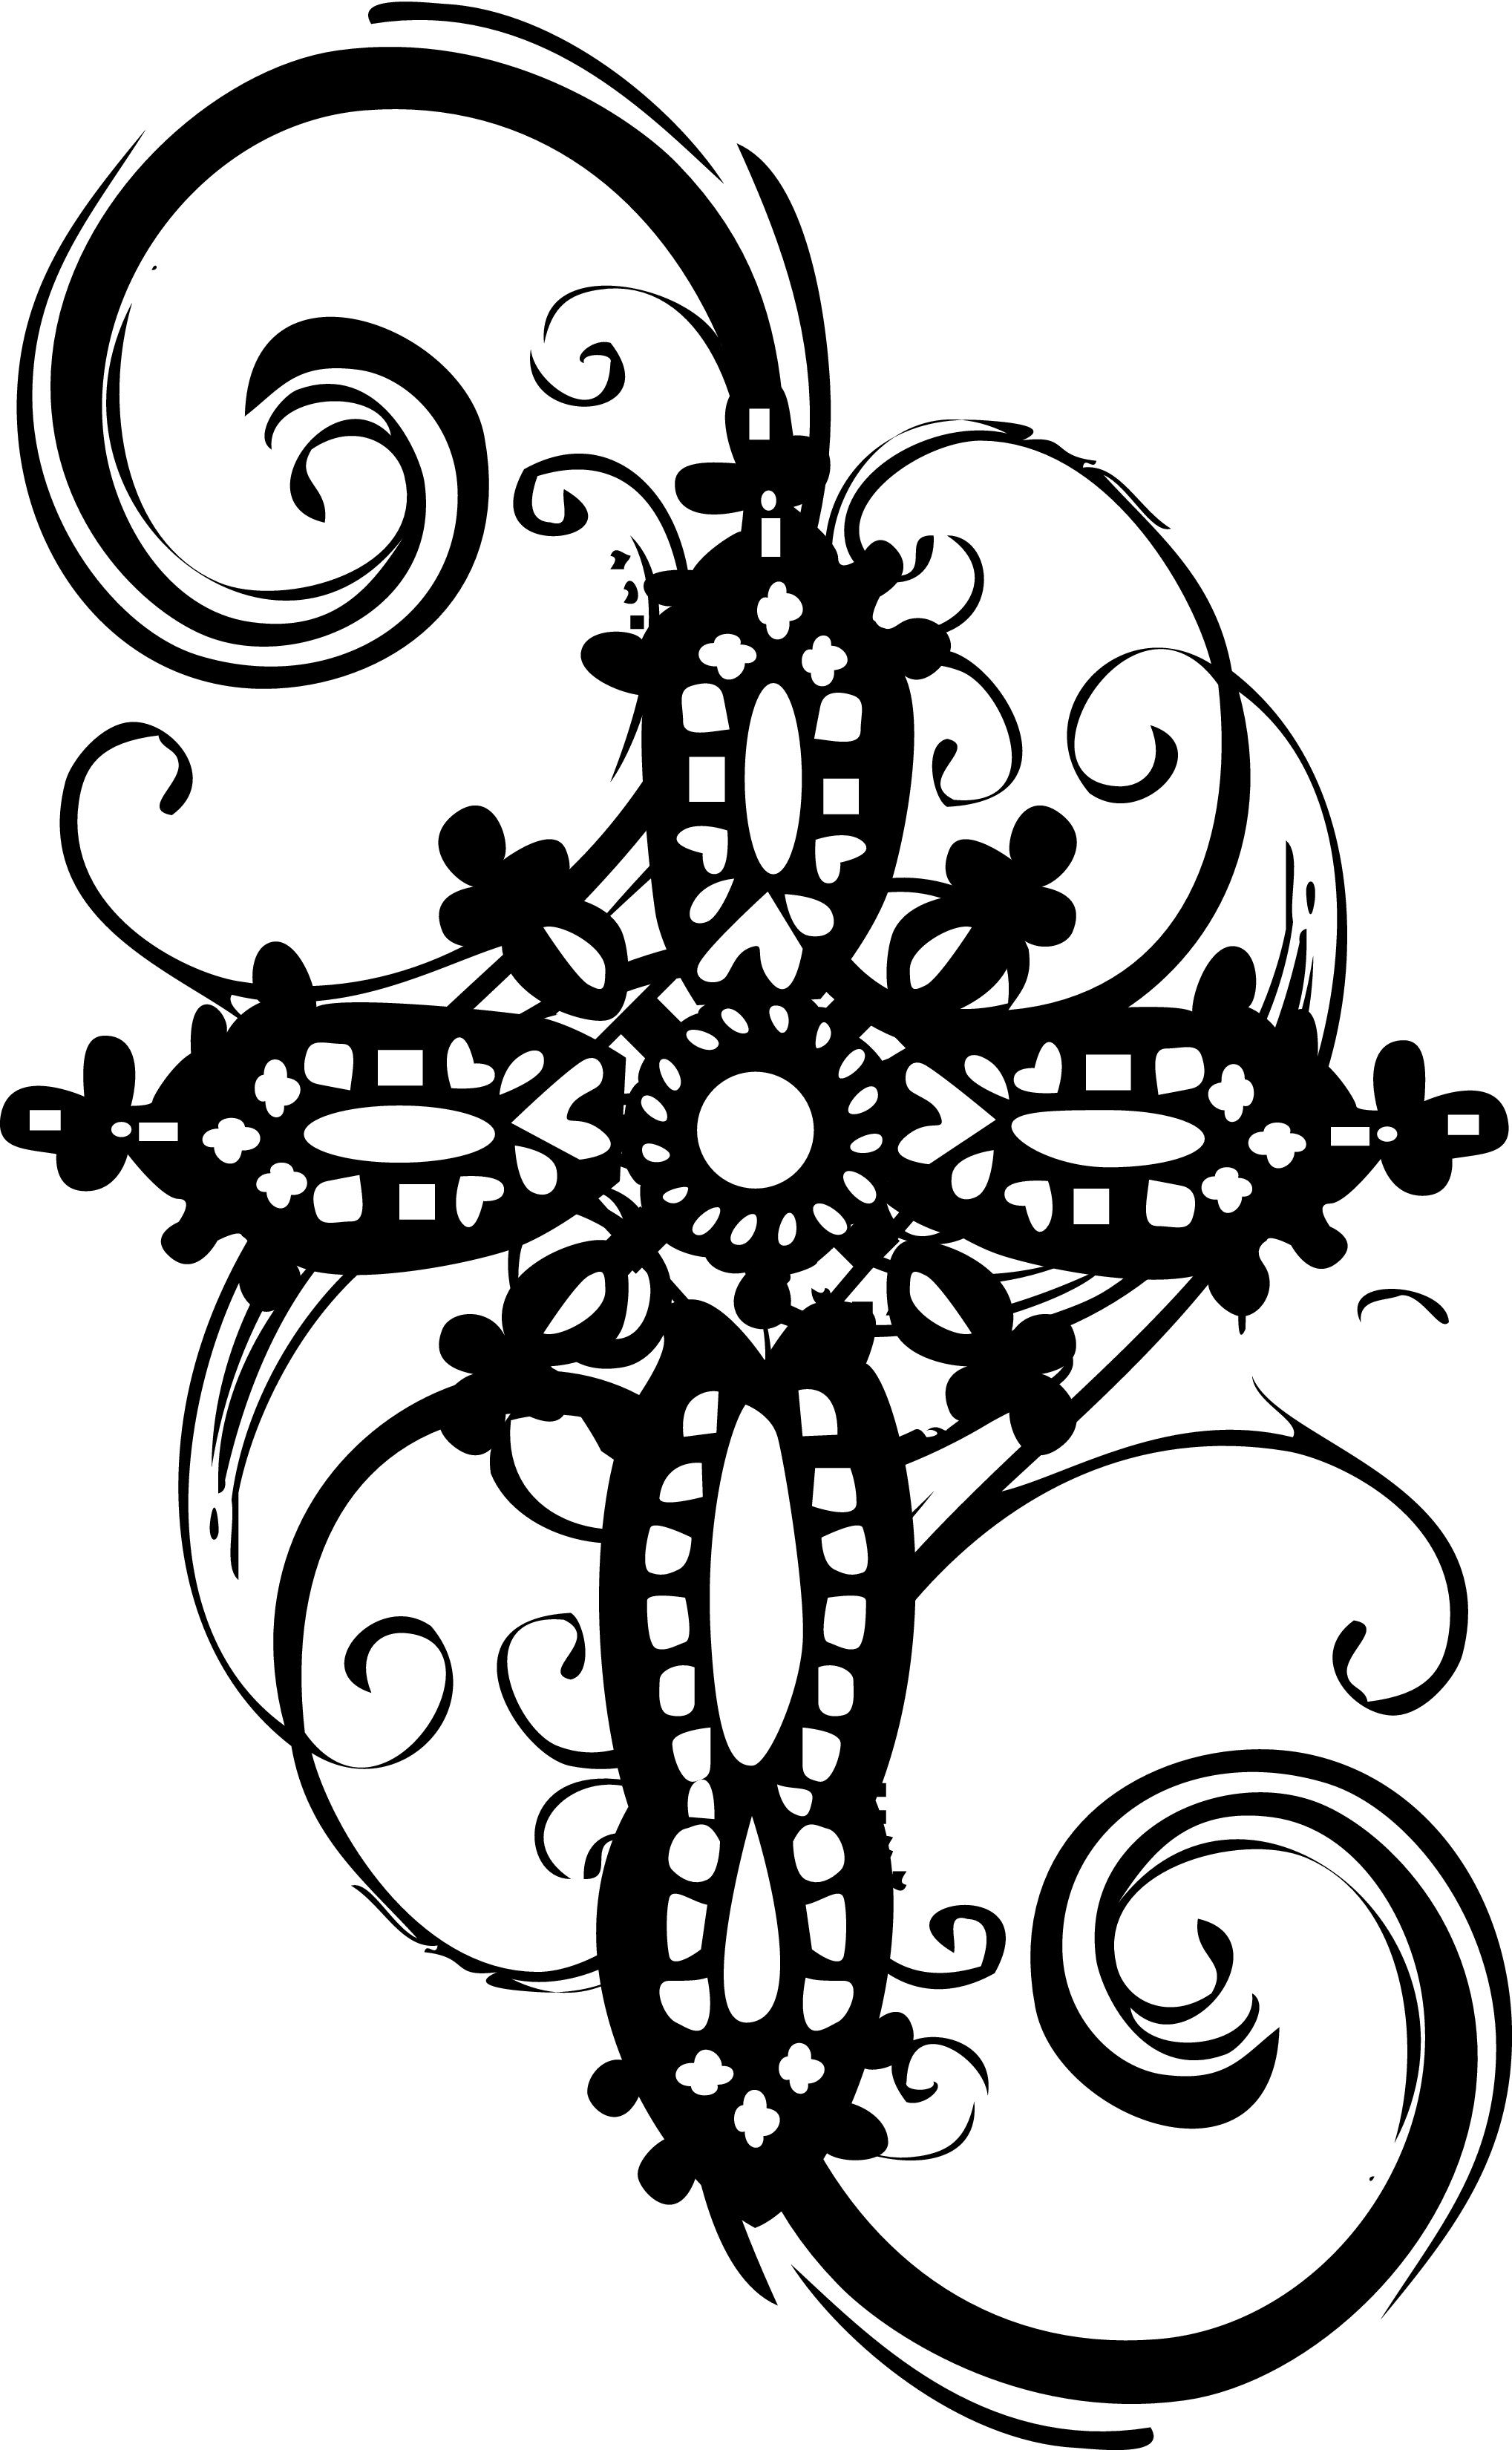 Cross Black And White Holy Cross Clipart Black And White Free To Use Clip Art